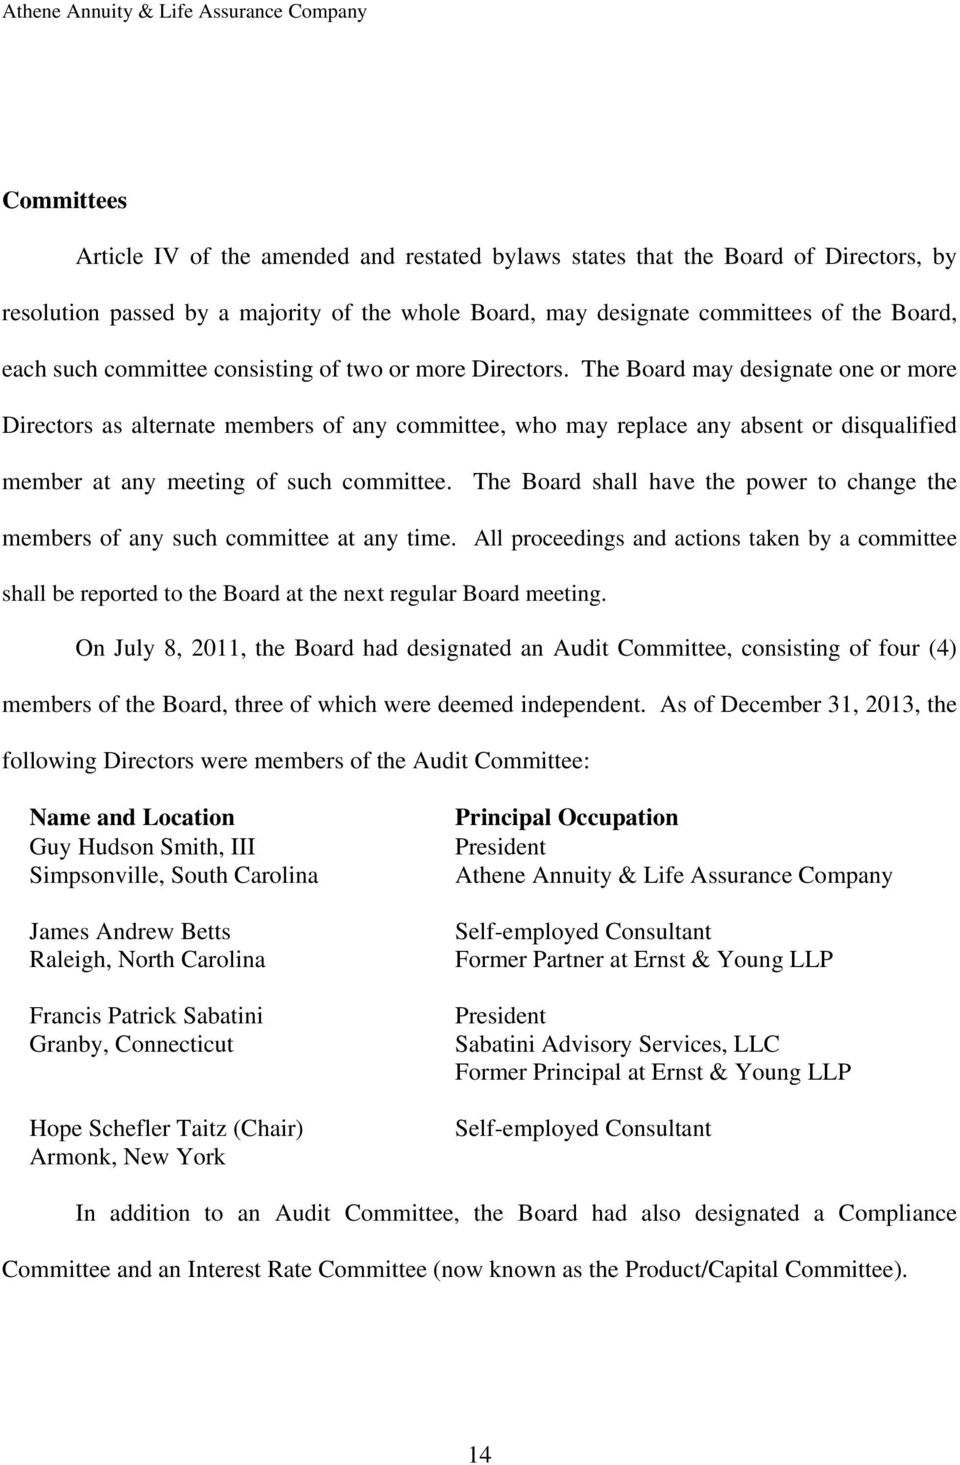 The Board may designate one or more Directors as alternate members of any committee, who may replace any absent or disqualified member at any meeting of such committee.